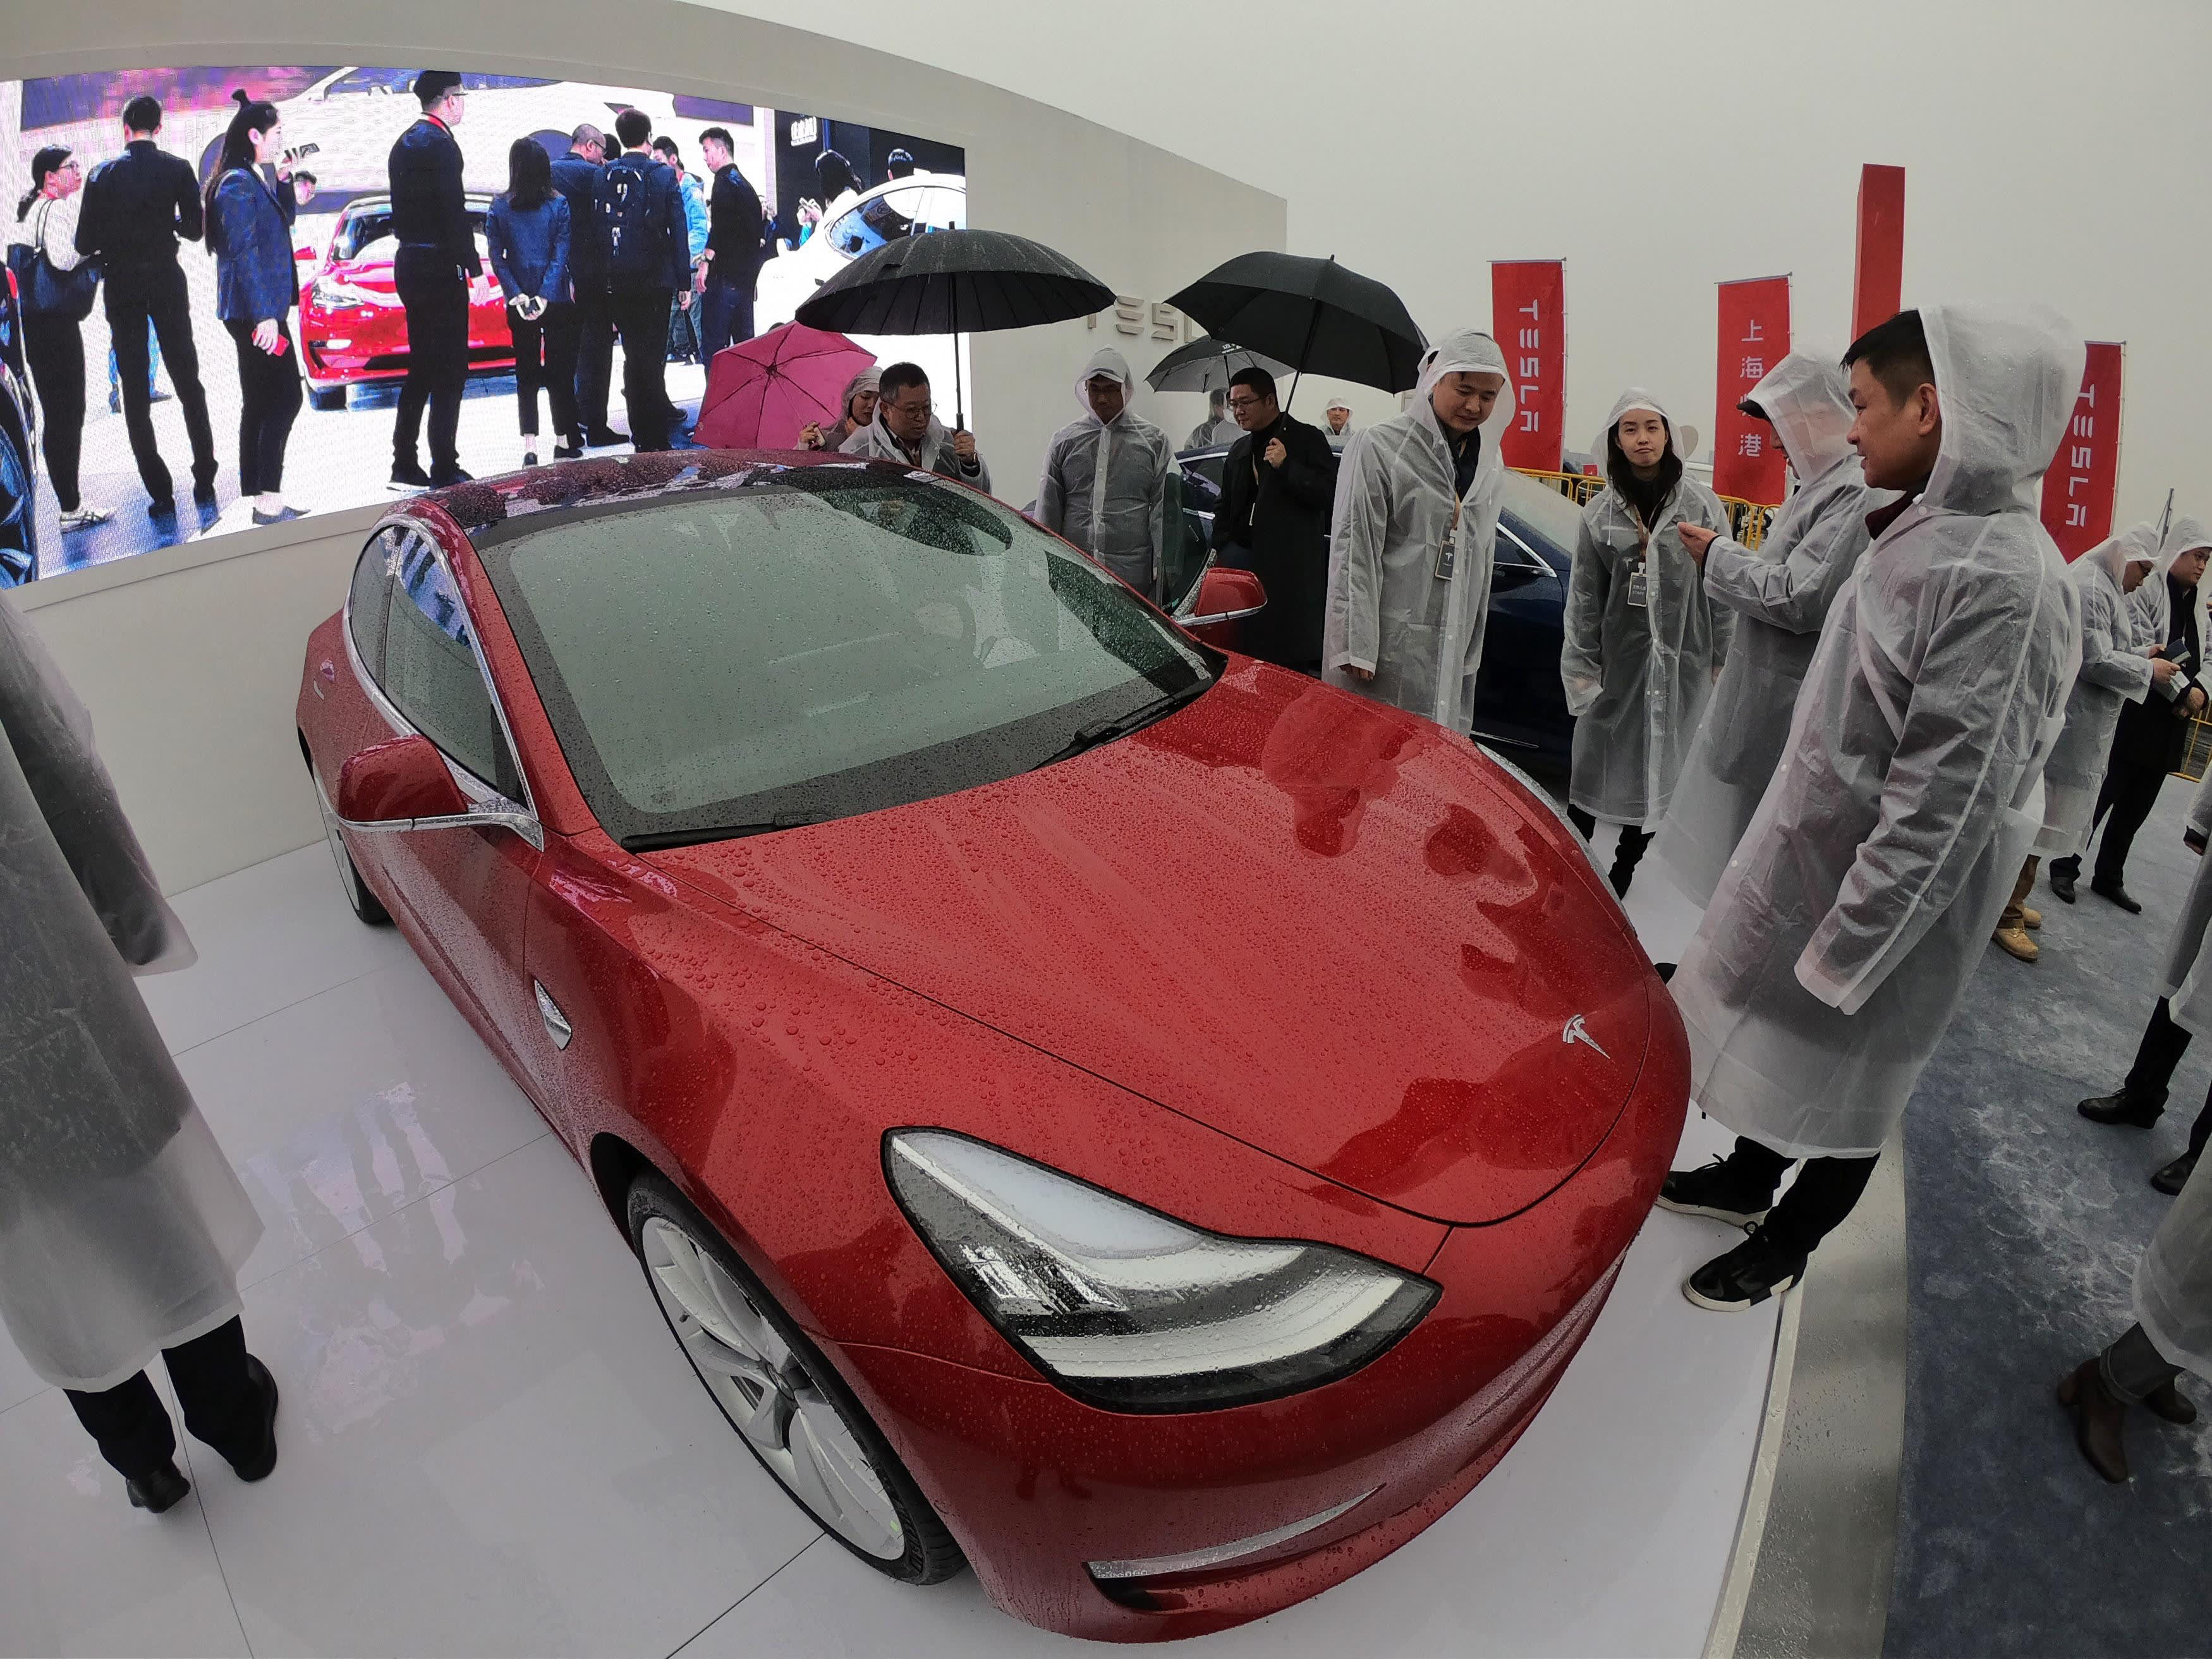 Guests look at a Tesla Model 3 during a ground-breaking ceremony for a Tesla factory in Shanghai on January 7, 2019.